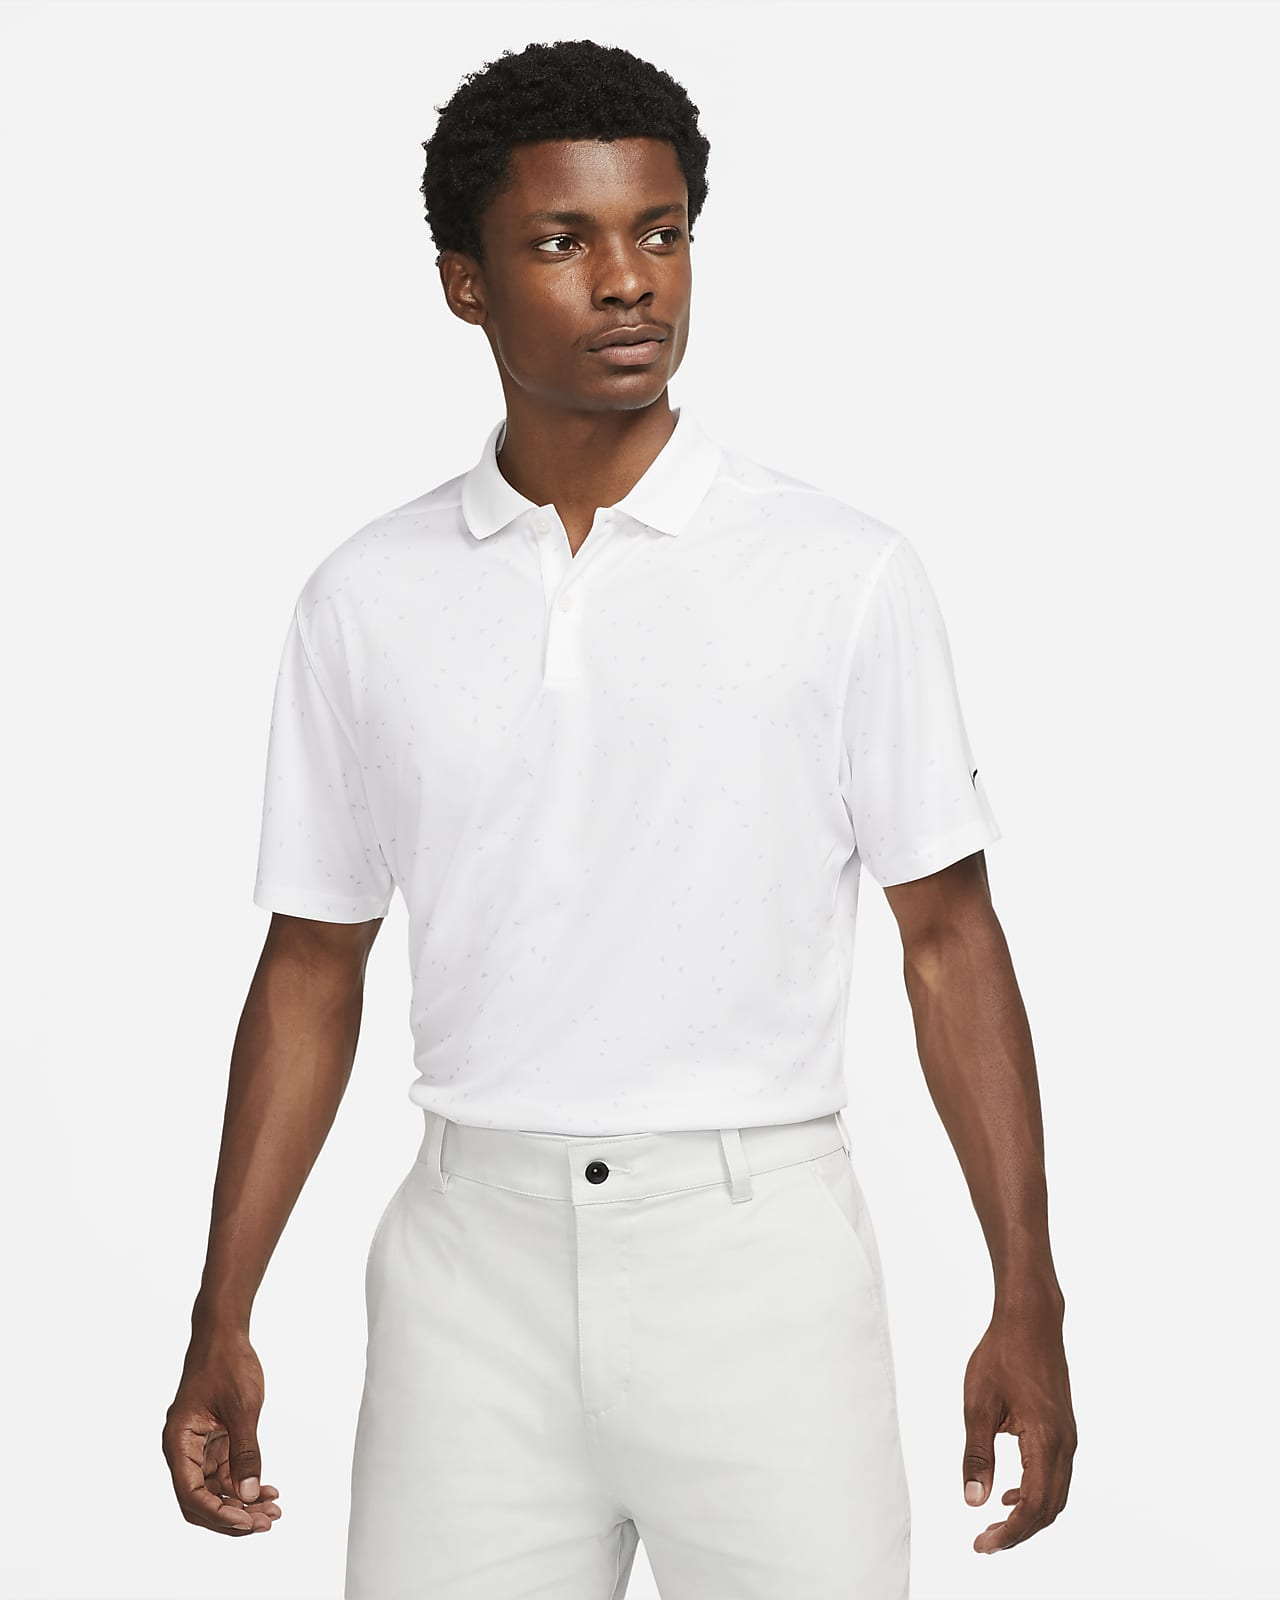 Nike Dri-FIT Victory Men's Printed Golf Polo